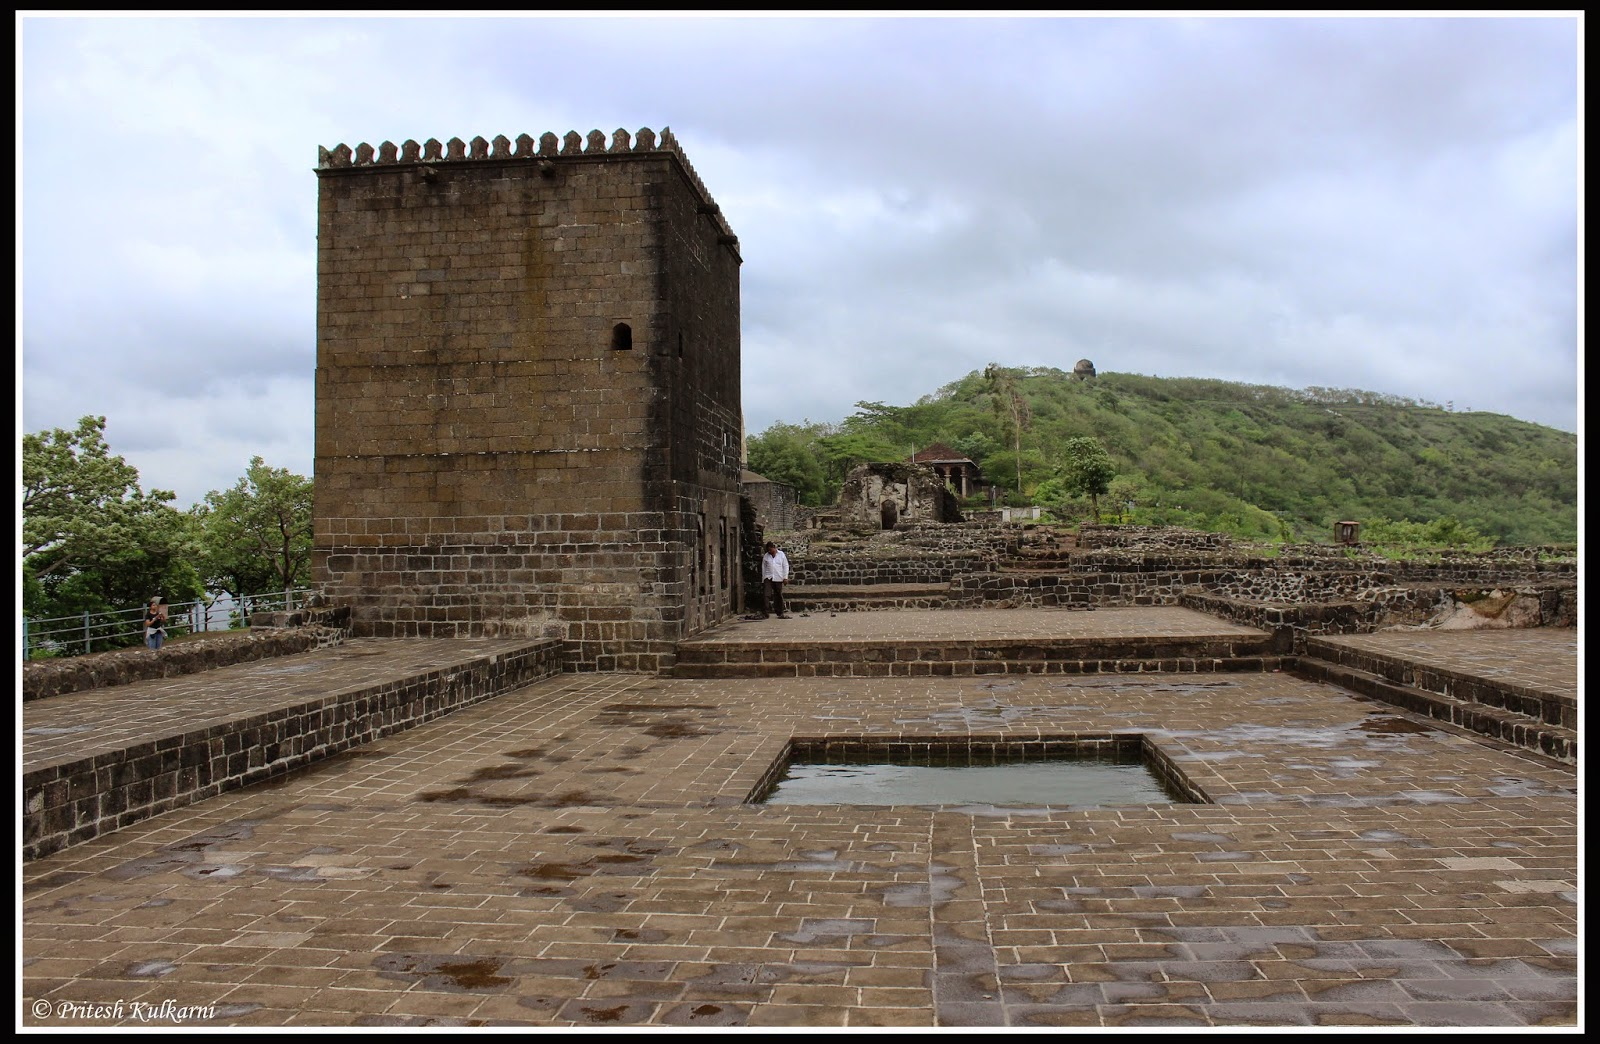 Birth place of Shivaji Maharaj, Shivneri